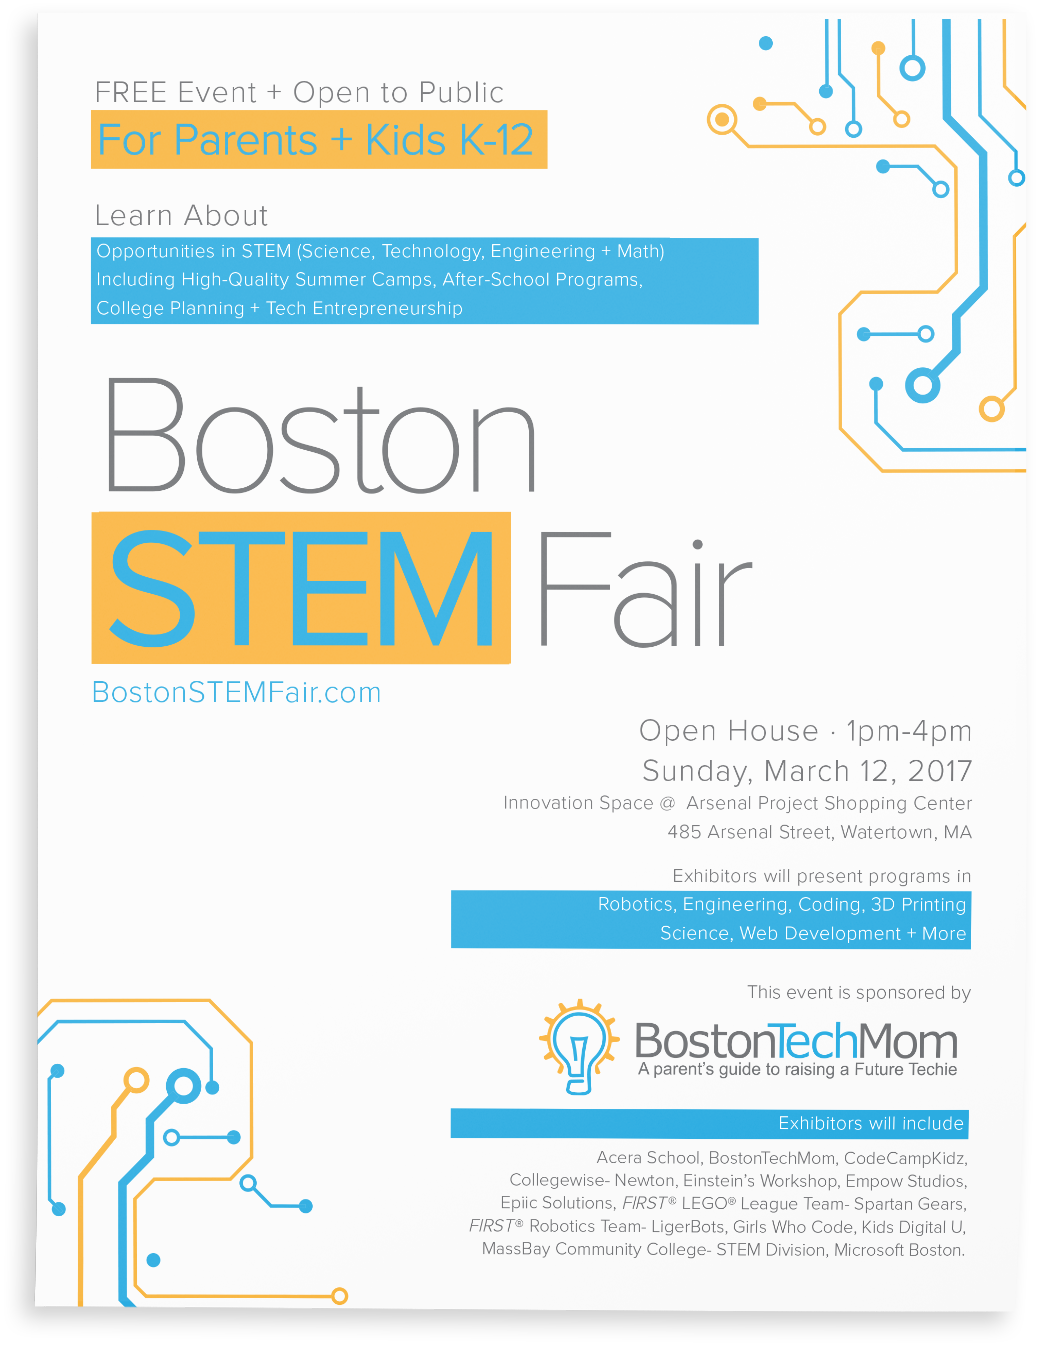 BOSTON-STEM-FAIR-flyer-2.png